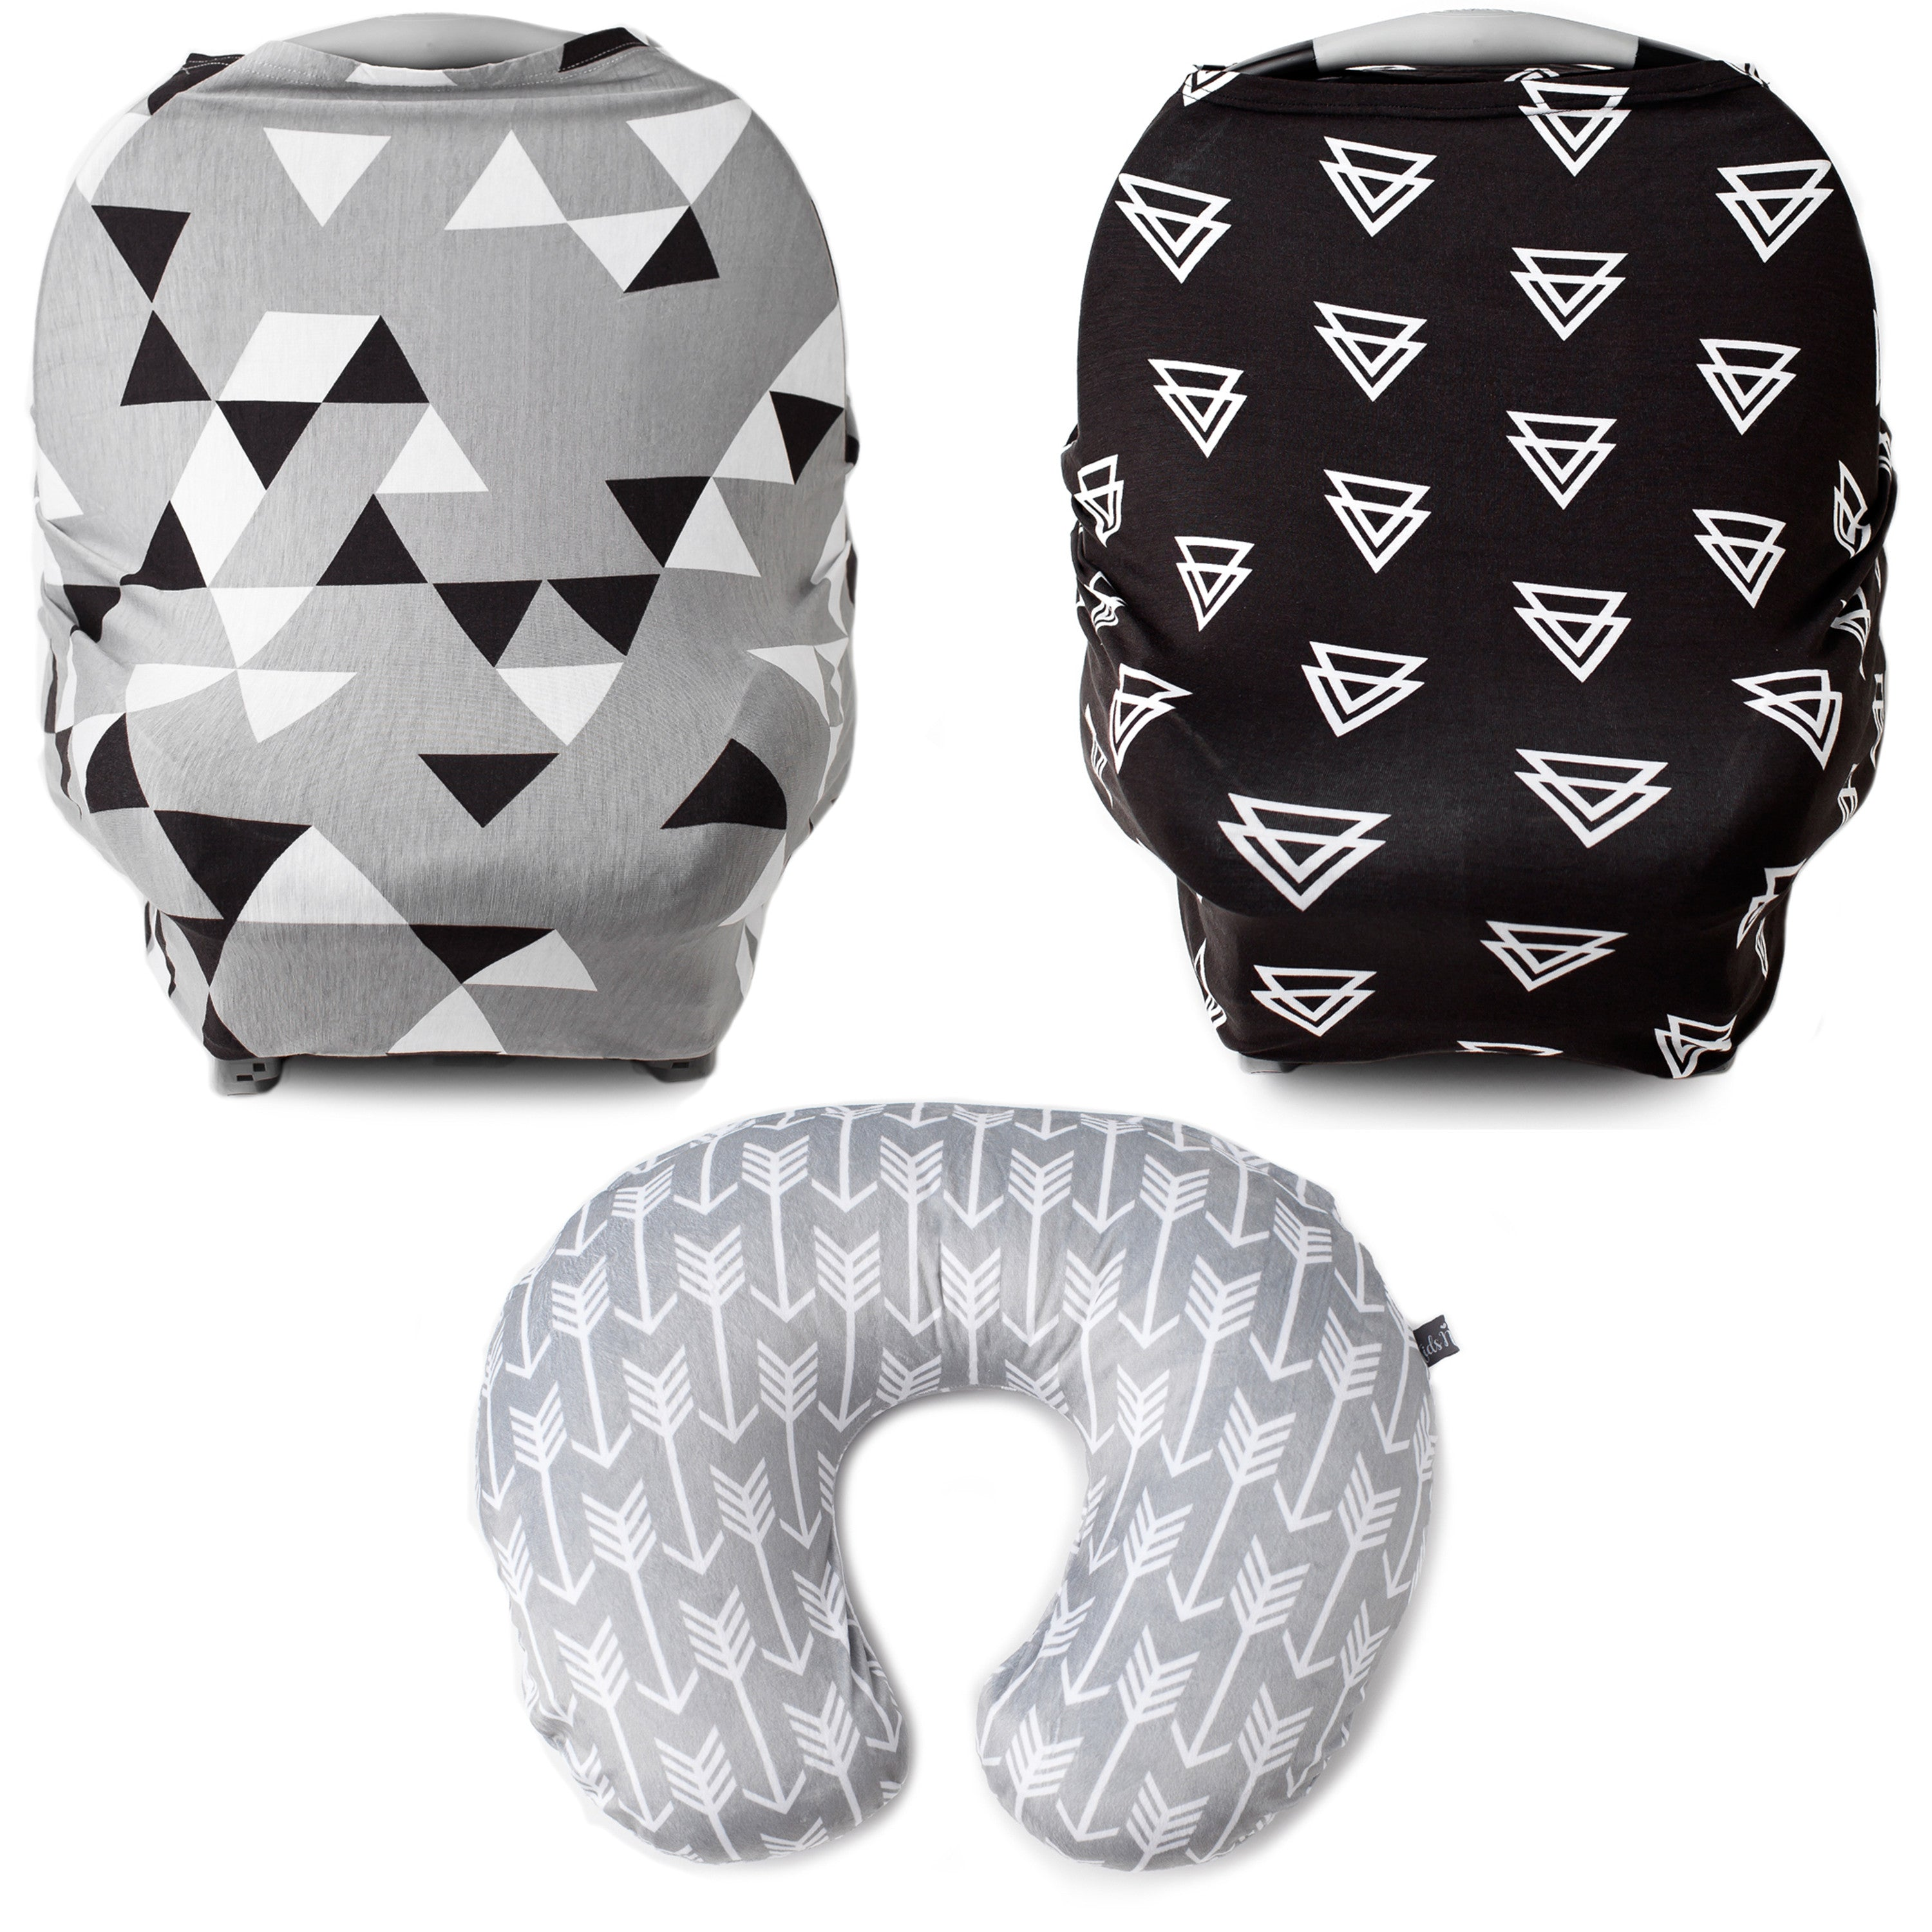 kids n such monochrome bundle multi use carseat covers x2 geometric triangles